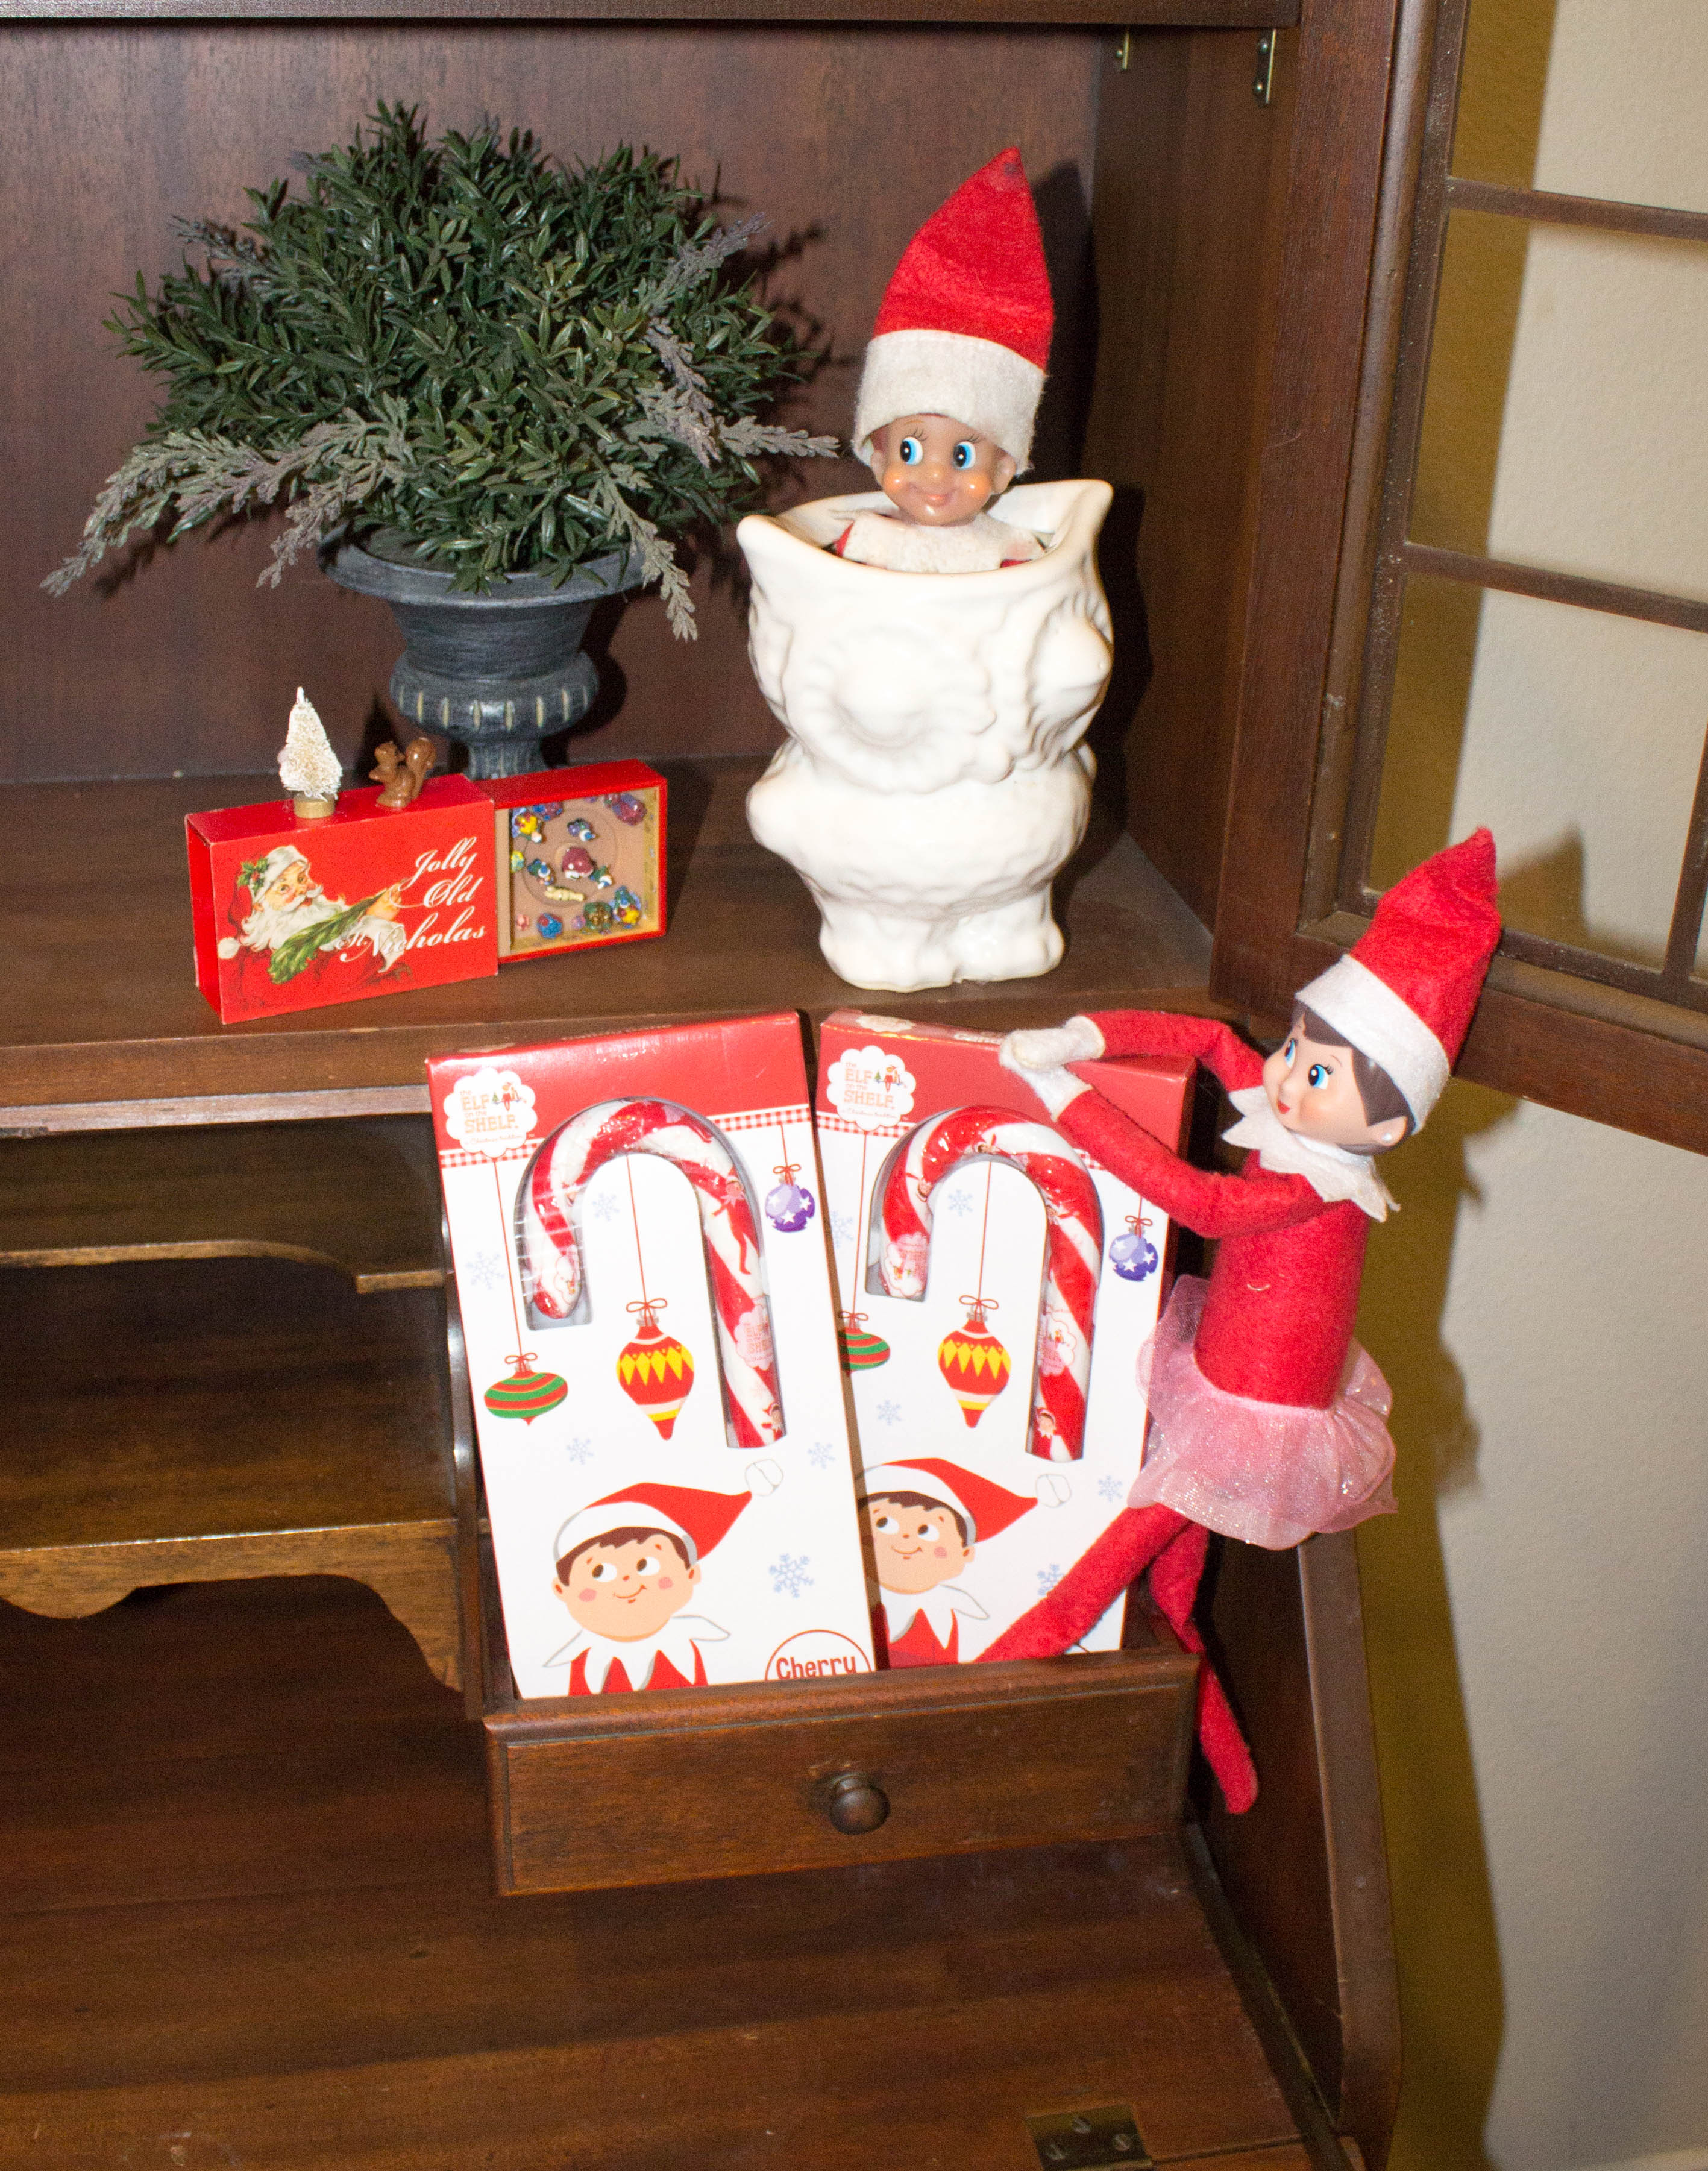 elf-on-the-shelf-ideas-and-elf-on-shelf-products-scenes-christmas-traditions-10